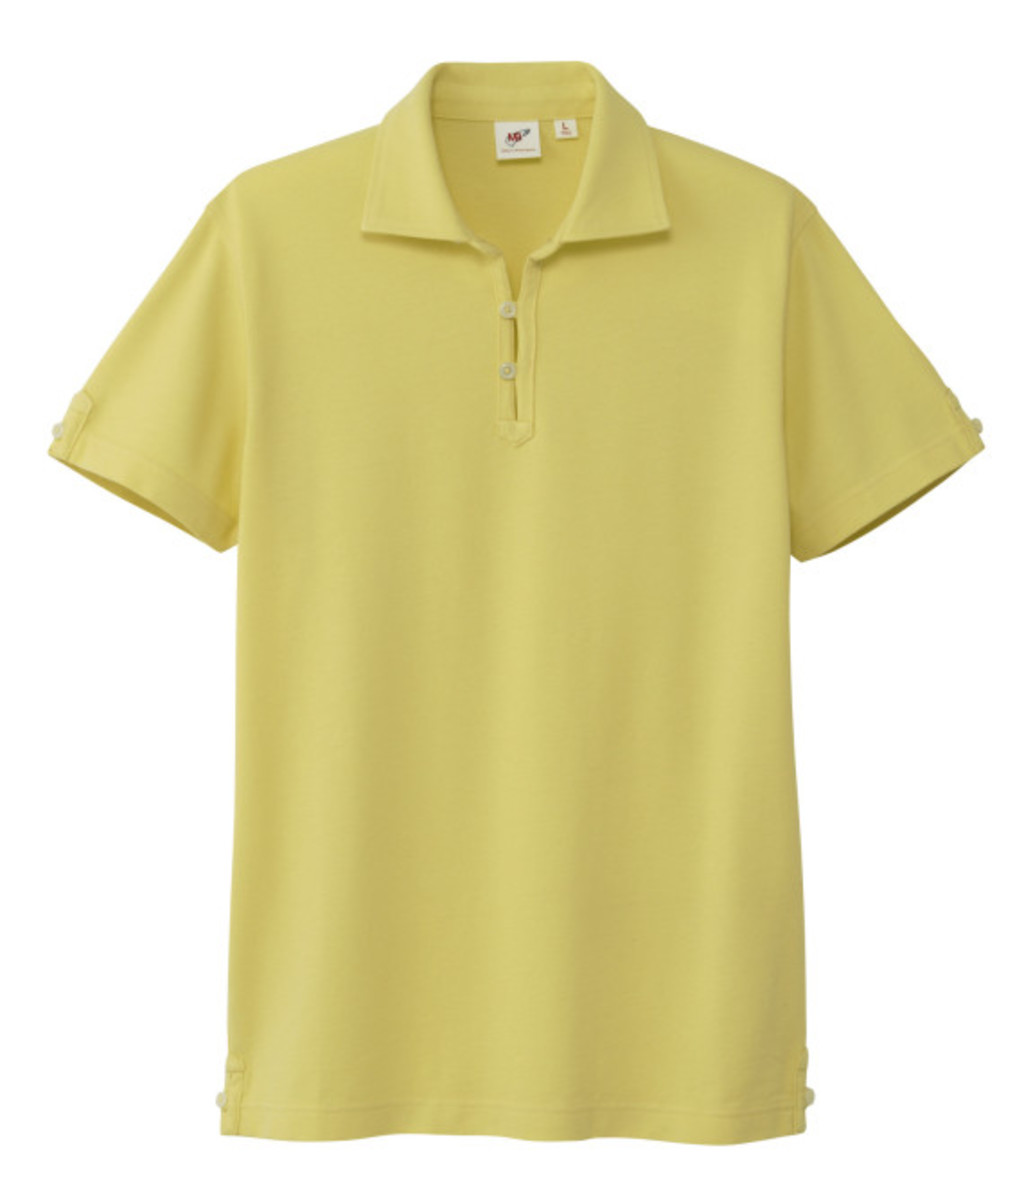 michael-bastian-x-uniqlo-mens-polo-shirt-collection-2013-04